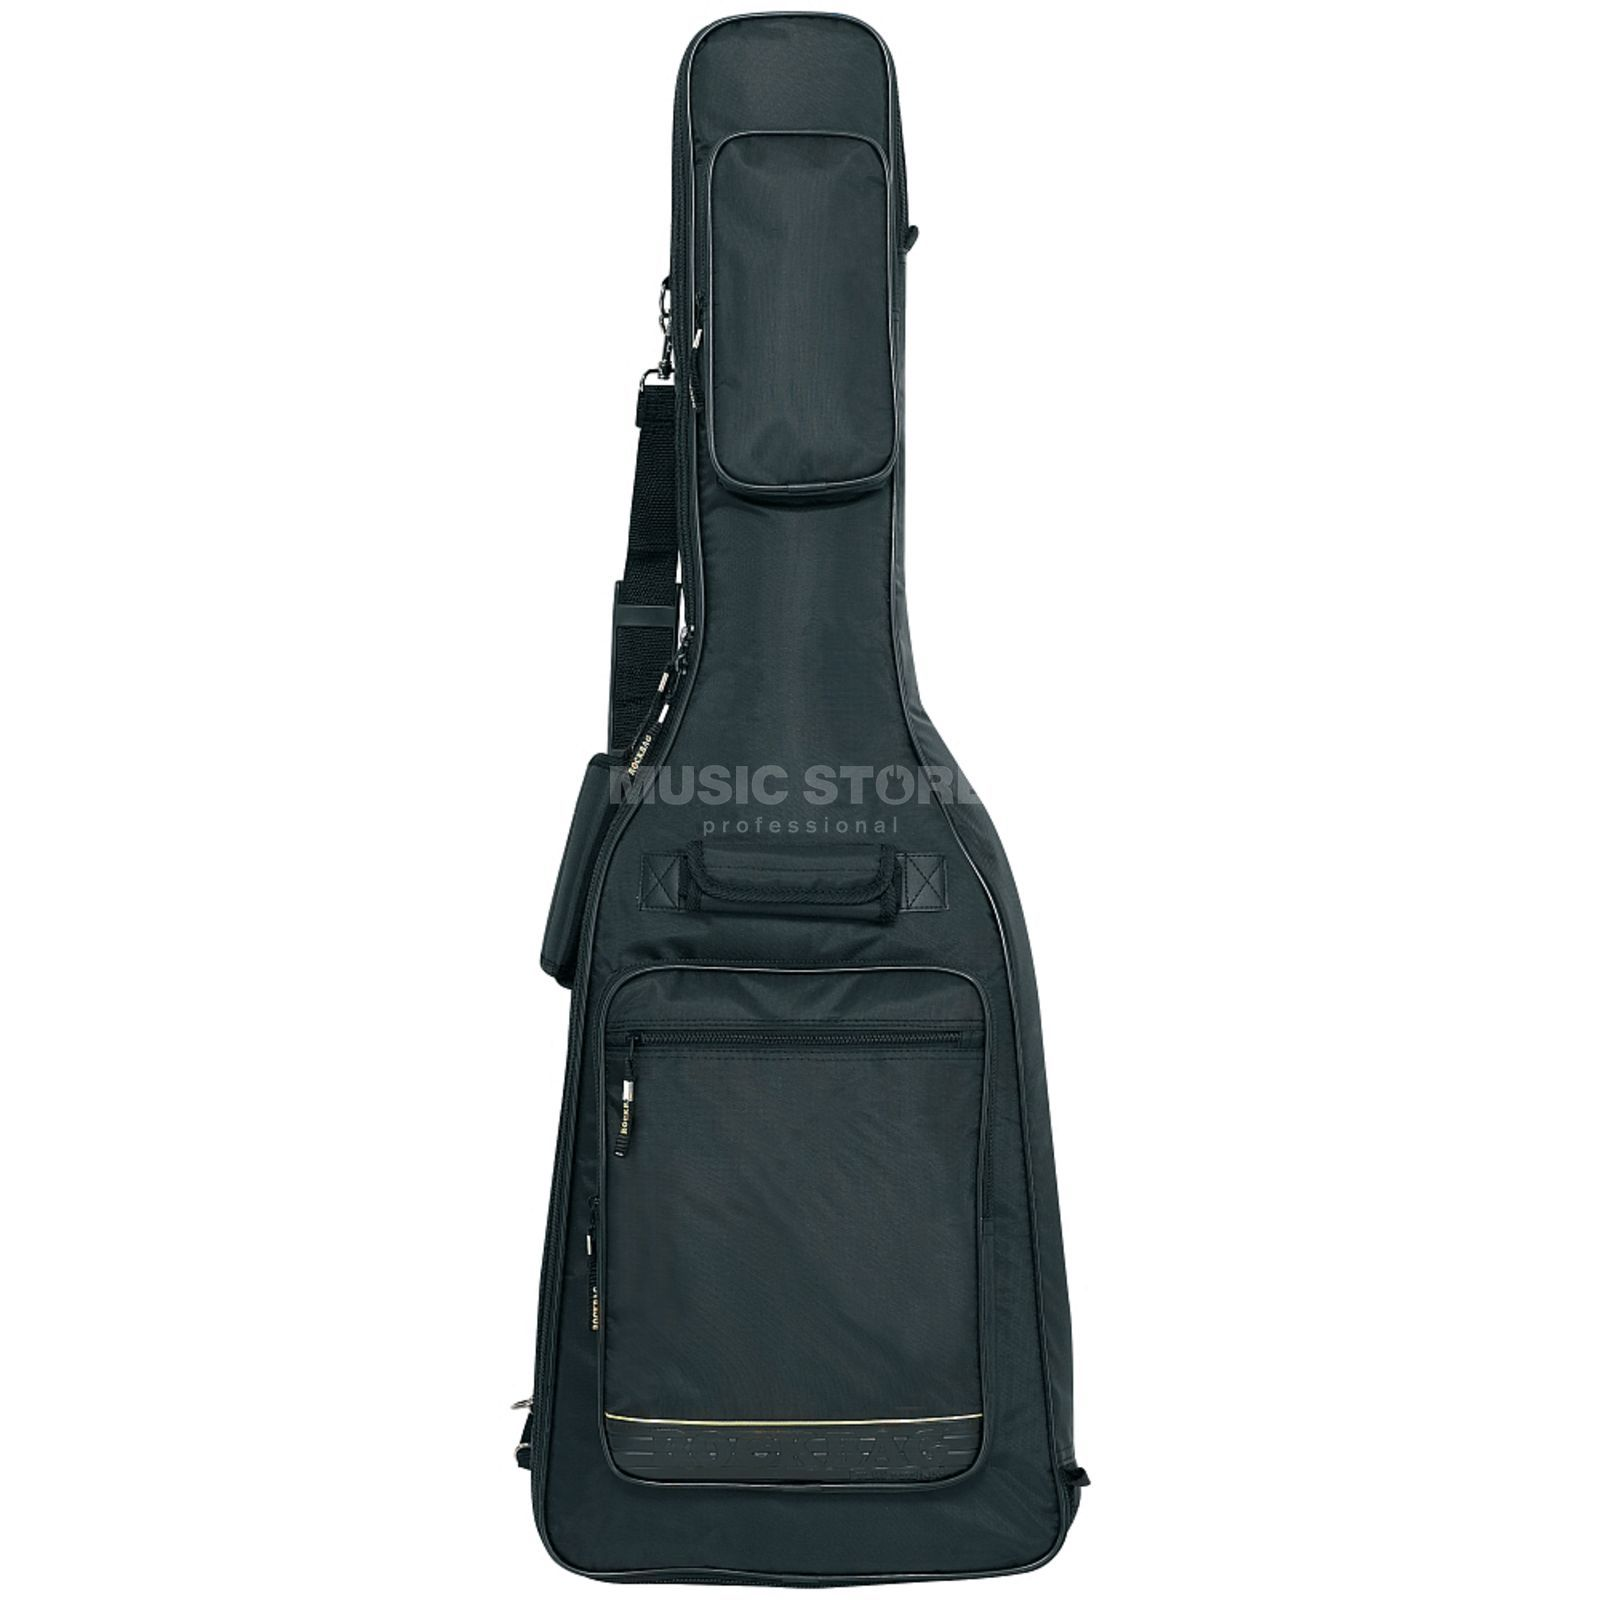 Rockbag RB 20506 Electric Guitar Bag Deluxe Line Produktbild